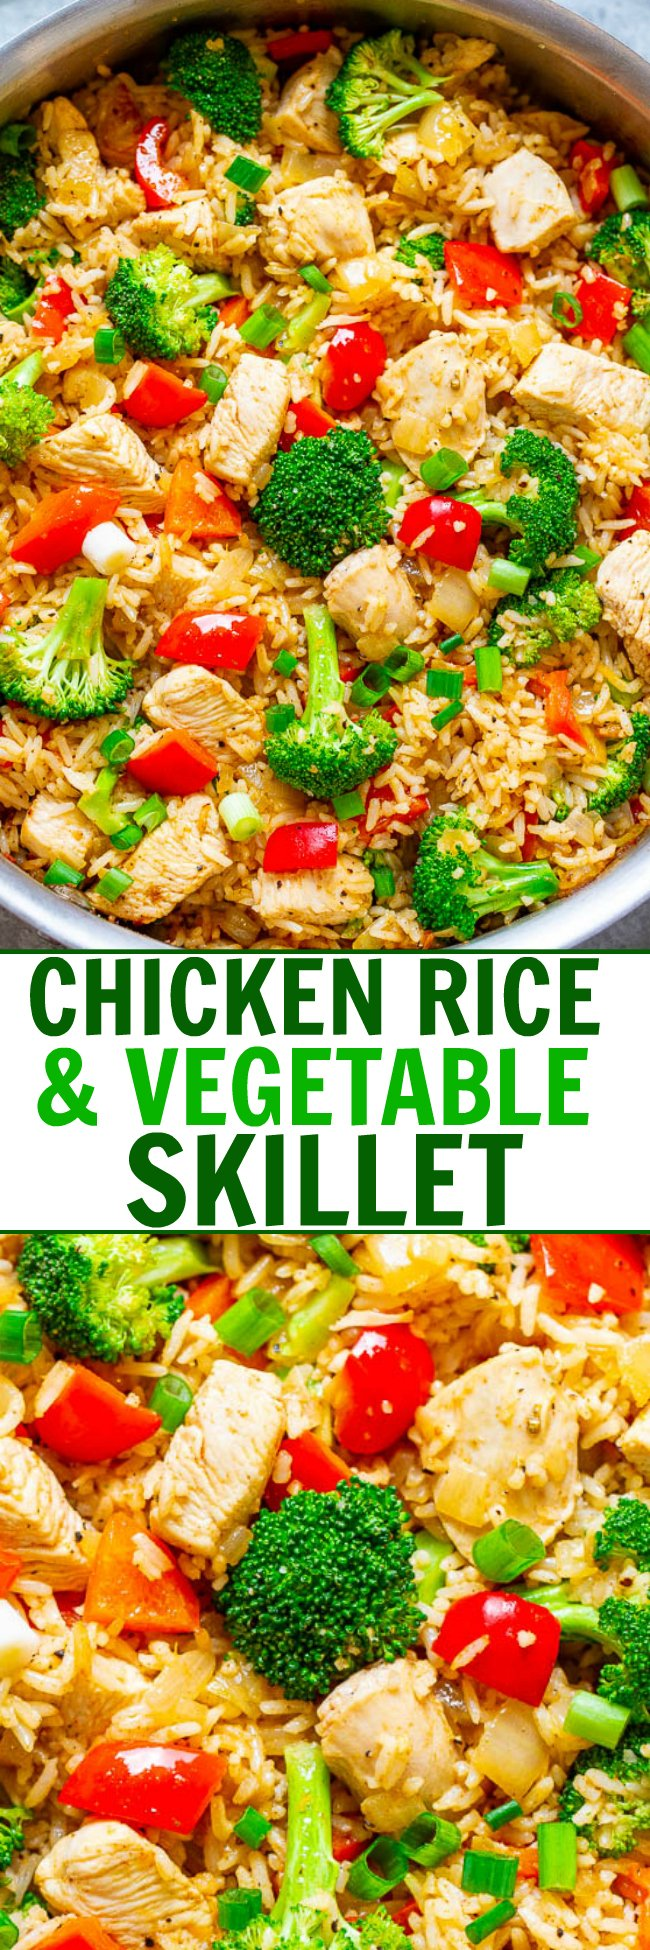 Chicken, Rice, and Vegetable Skillet – EASY, ready in 20 minutes, made in ONE skillet with everyday ingredients you probably have on hand!! A HEALTHY weeknight dinner the whole family will LOVE!!